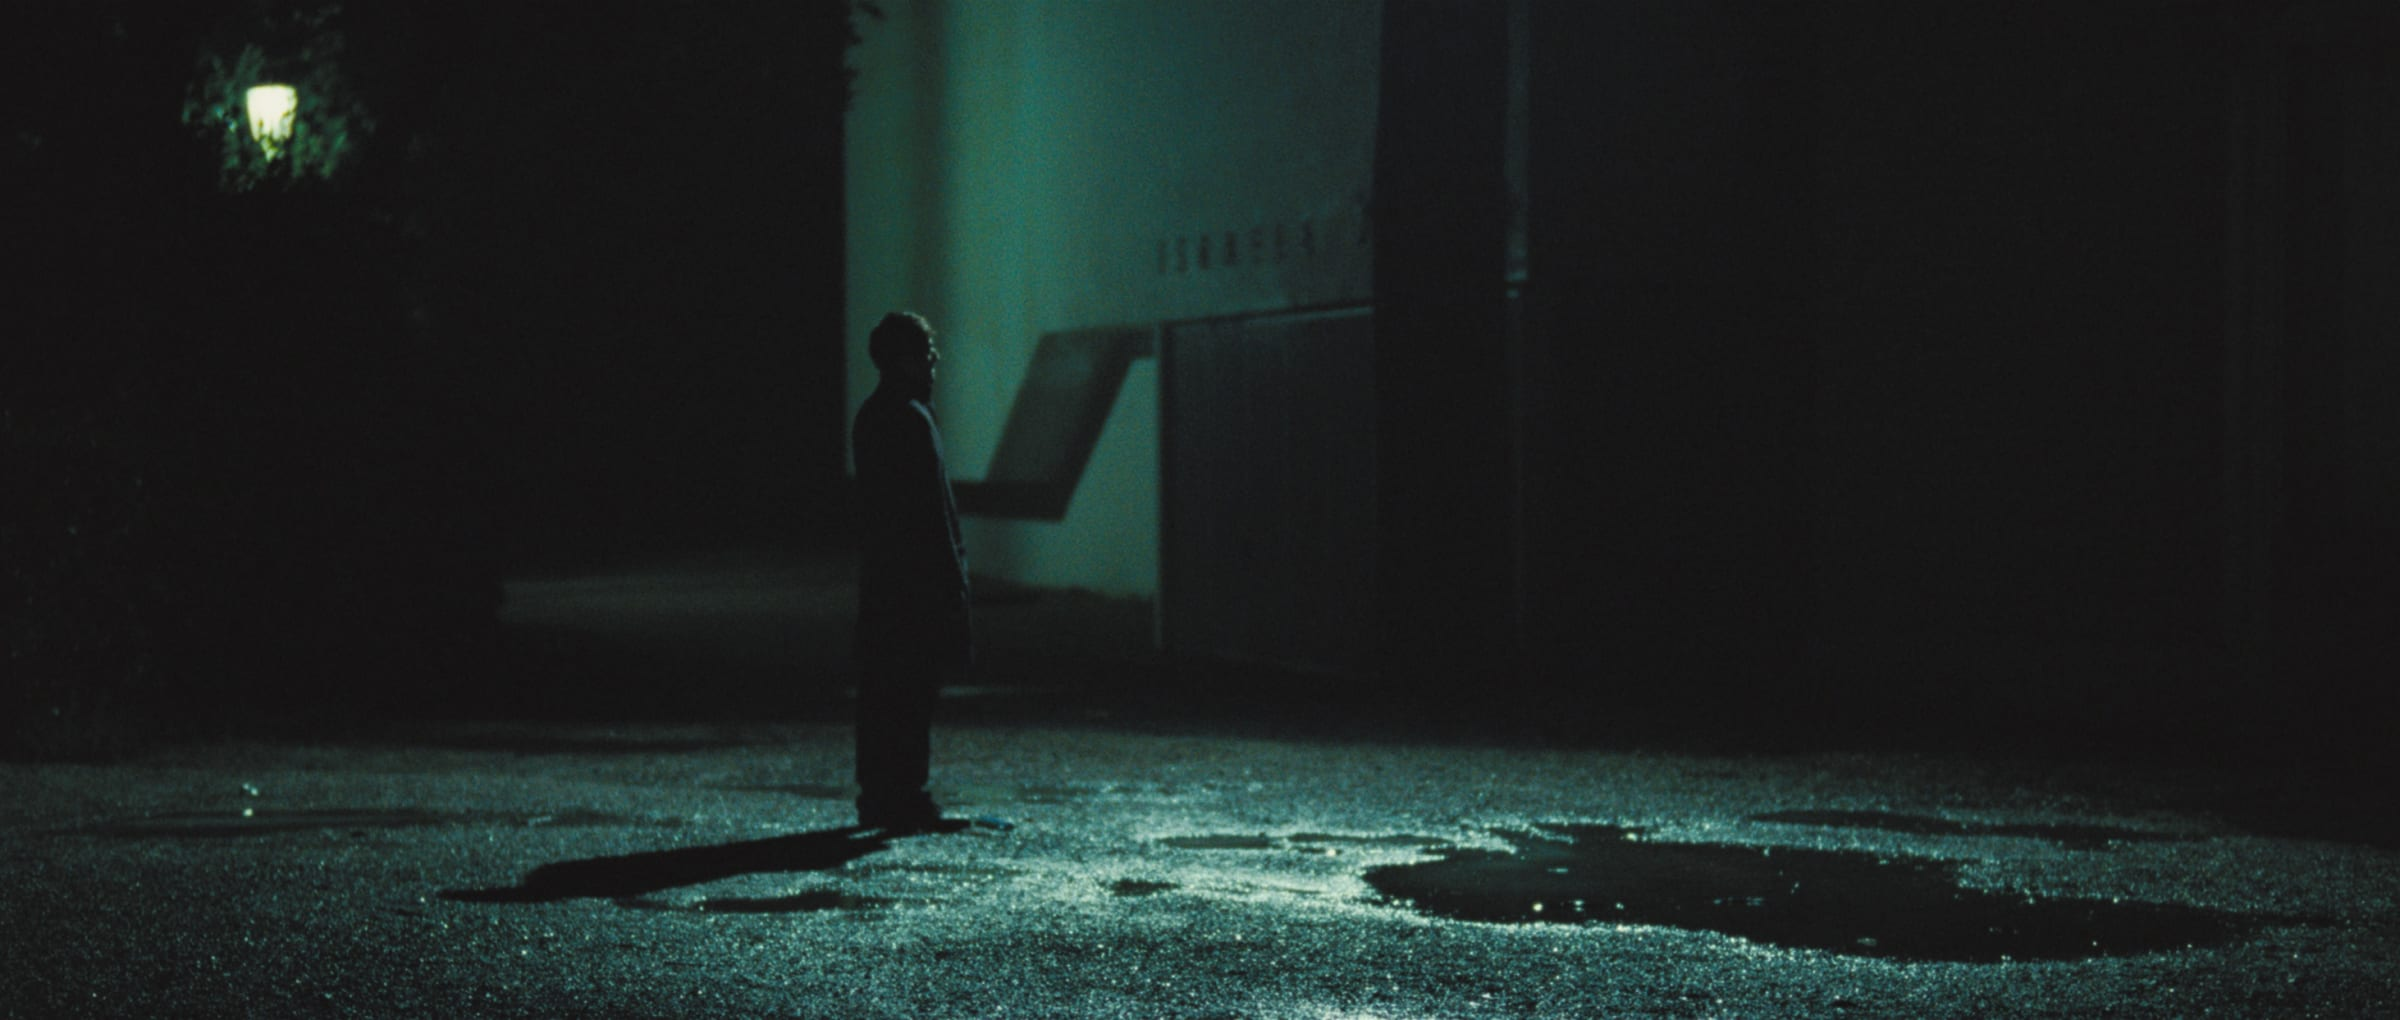 A man stands alone at night in an empty parking lot with a puddle; green light emanates from a street lamp in the background.